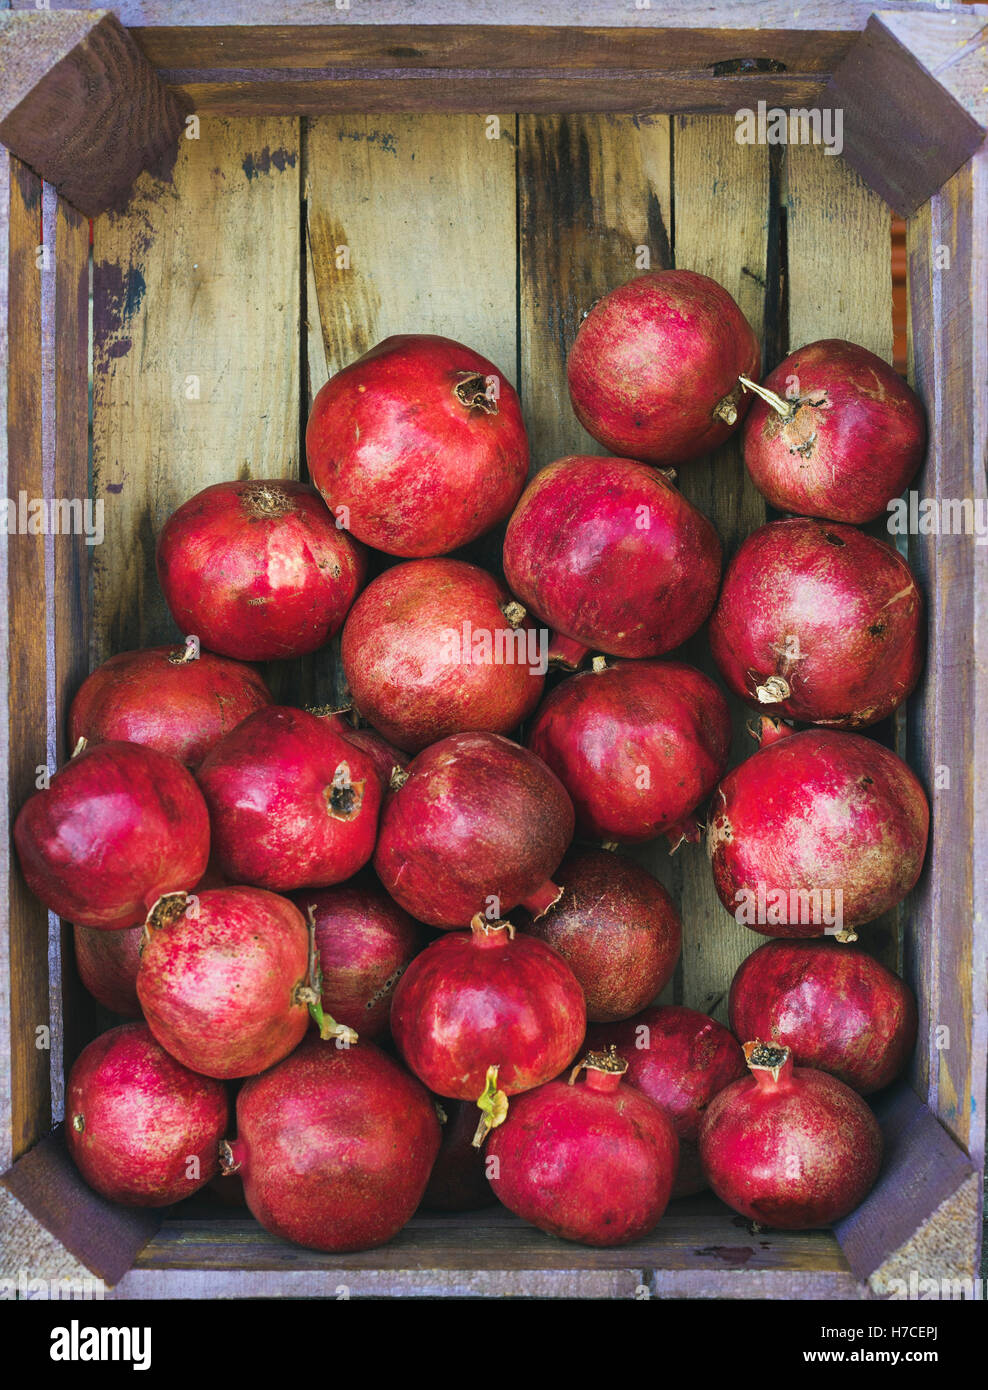 Turkish ripe red pomegranates in rustic wooden box, top view, copy space, vertical composition - Stock Image